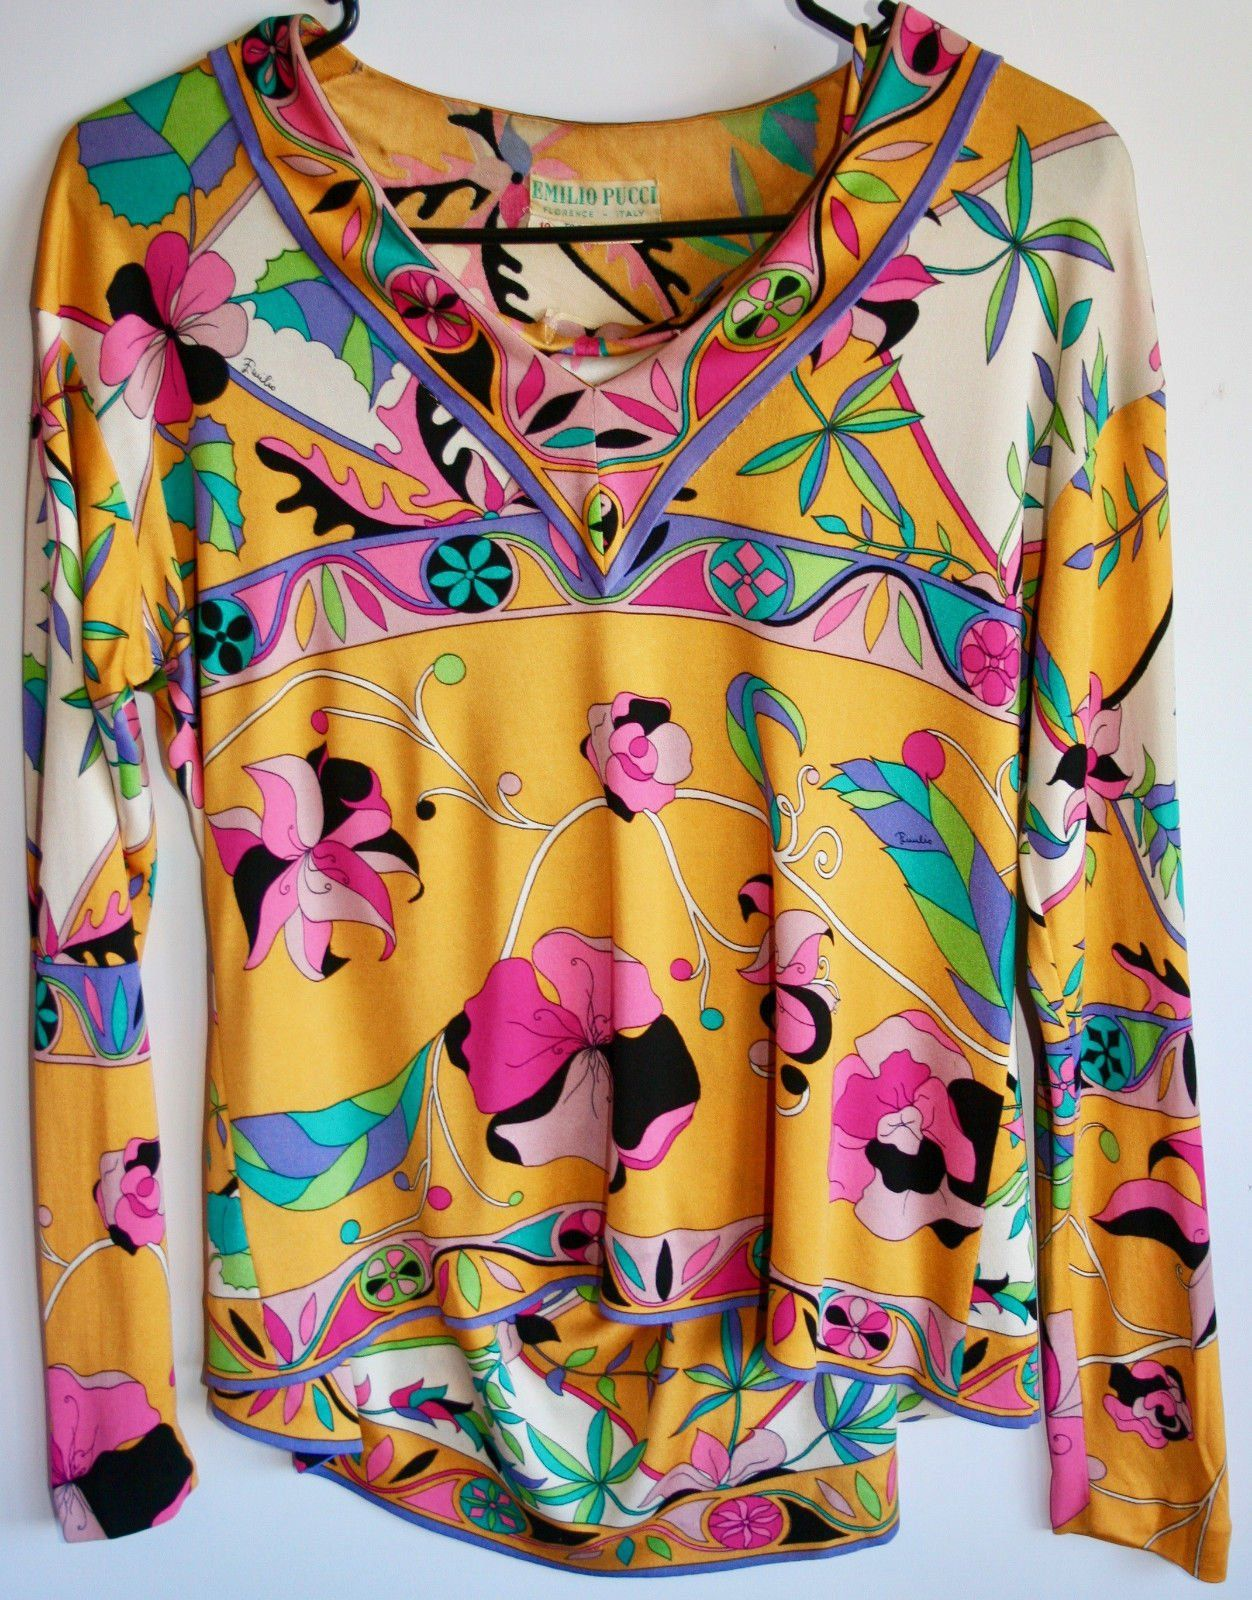 #Trending - Vintage EMILIO PUCCI 1960's Two Piece Silk Blouse and Skirt set https://t.co/R5Etsj0vRI Ebay https://t.co/MhONYxBOn2